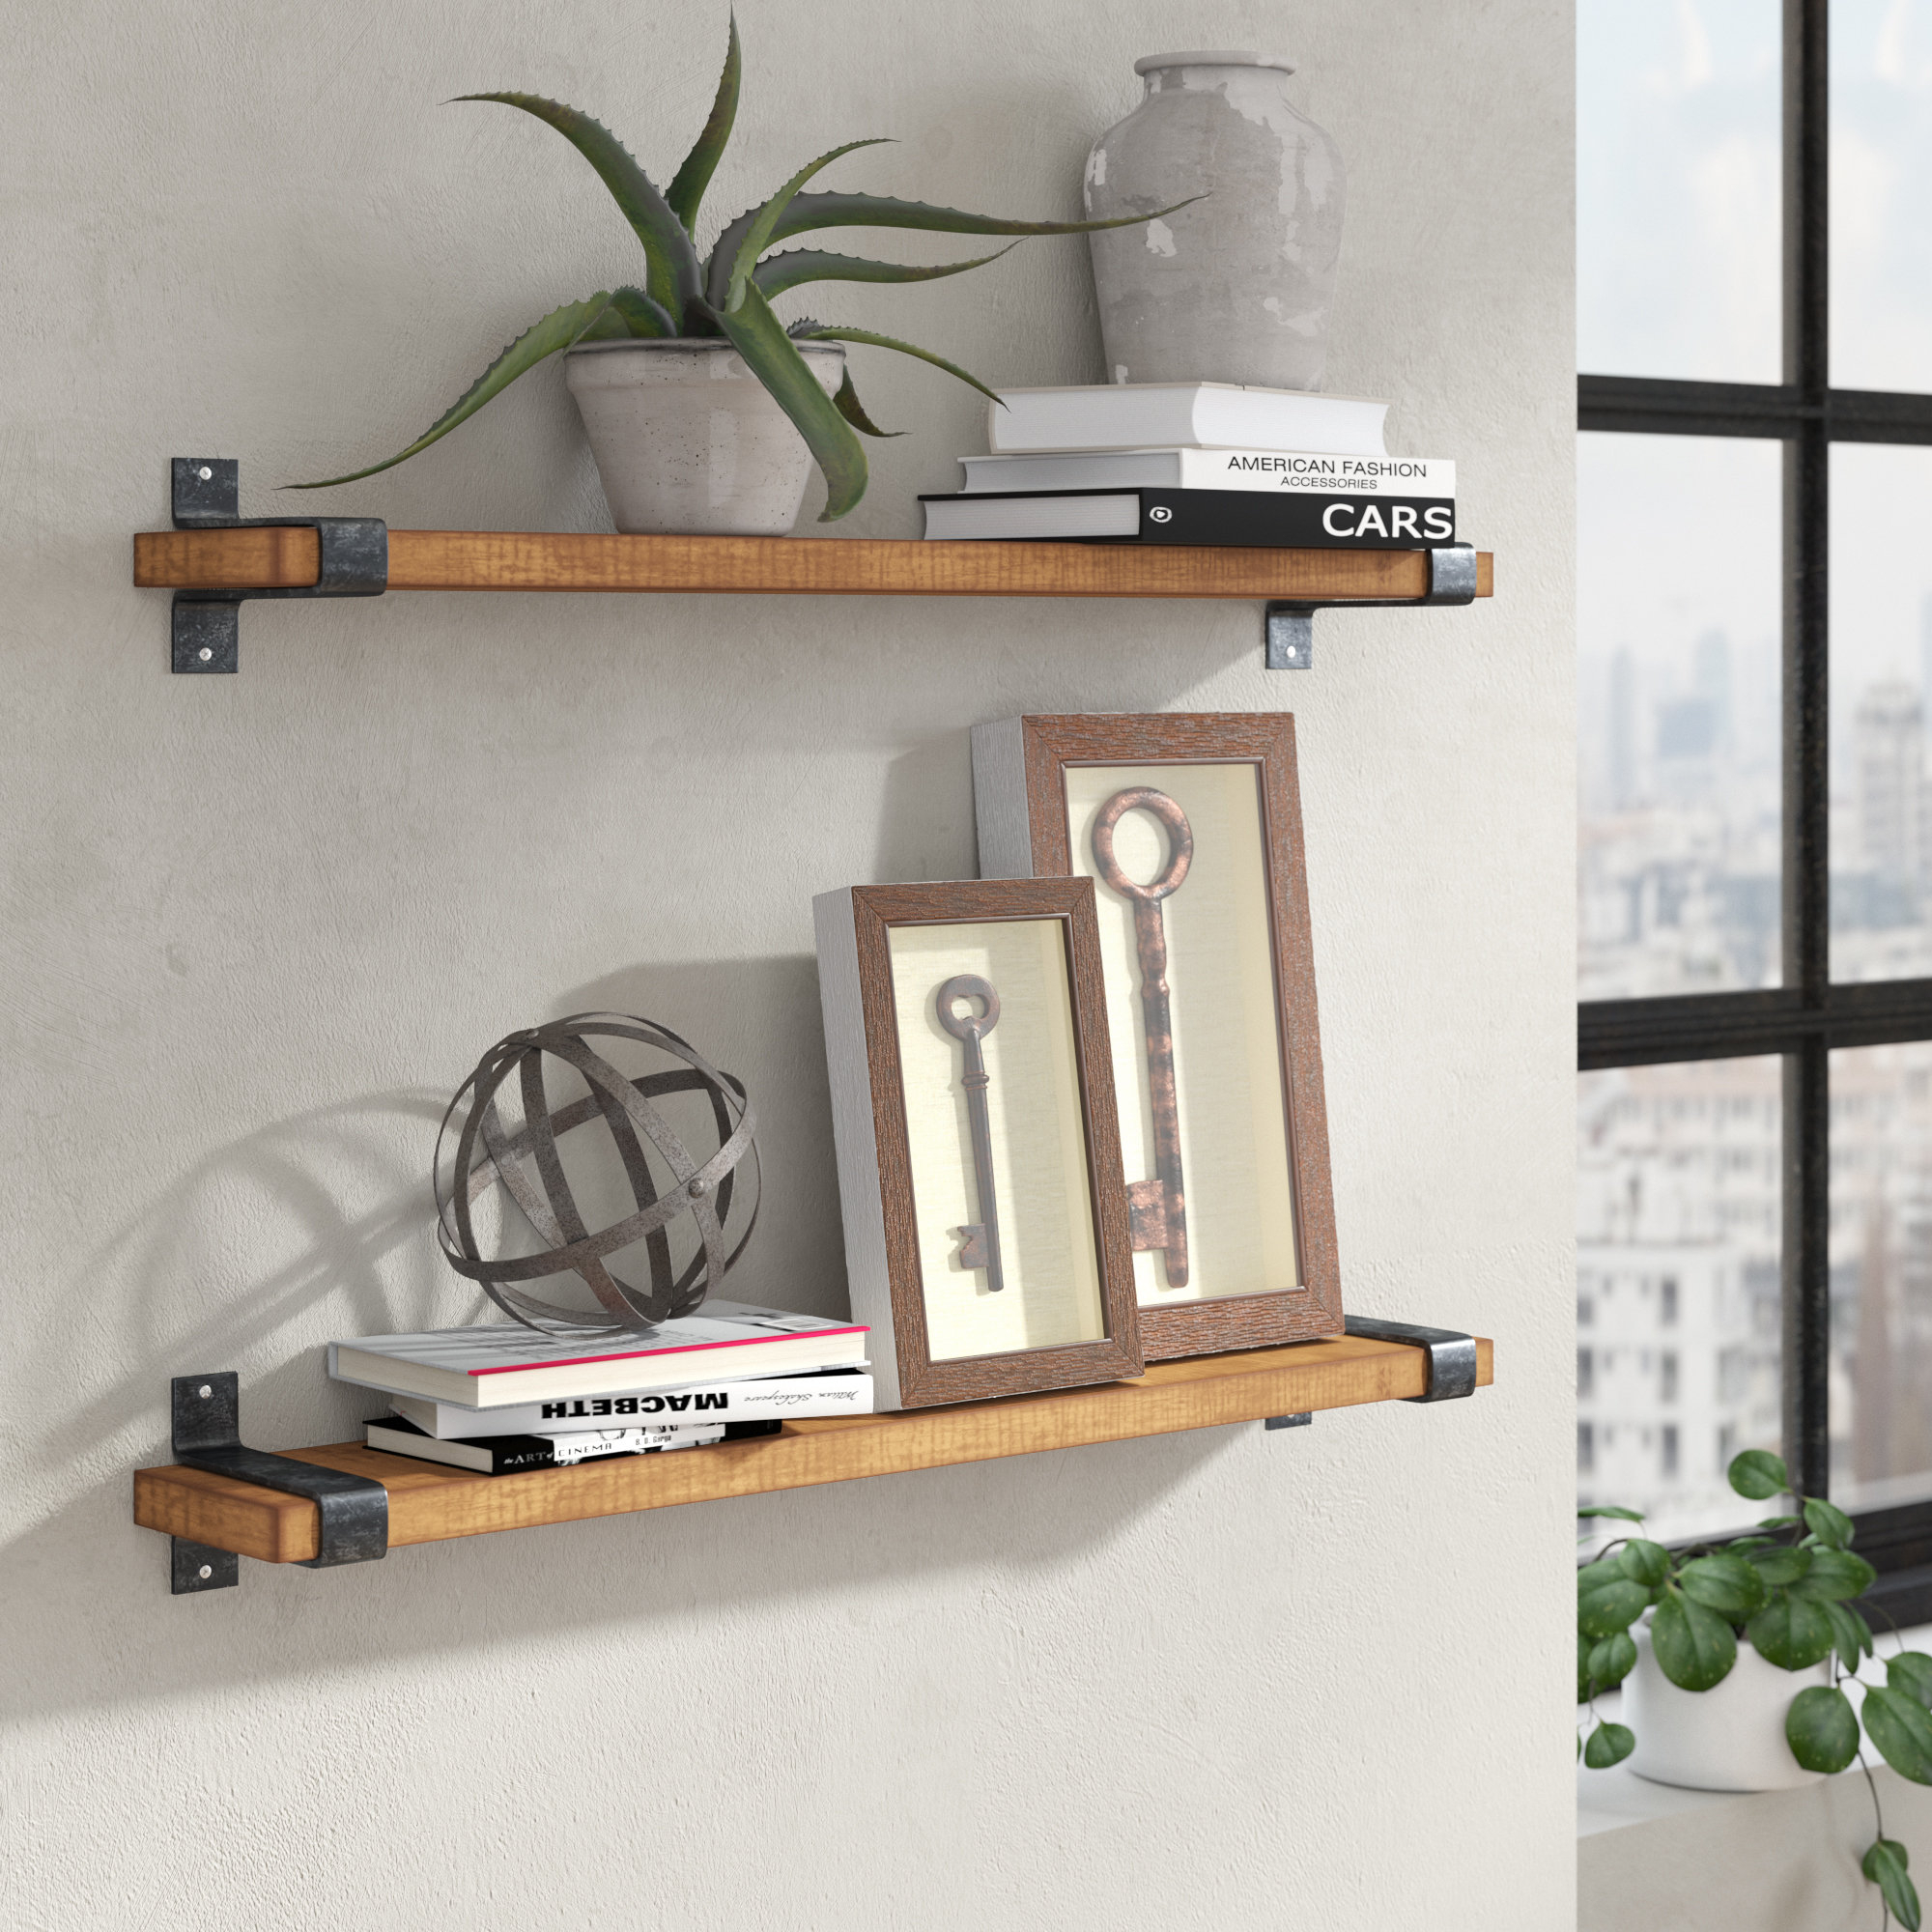 Treyvon Industrial Grace Wall Shelf For Farm Metal Wall Rack And 3 Tin Pot With Hanger Wall Decor (View 13 of 30)